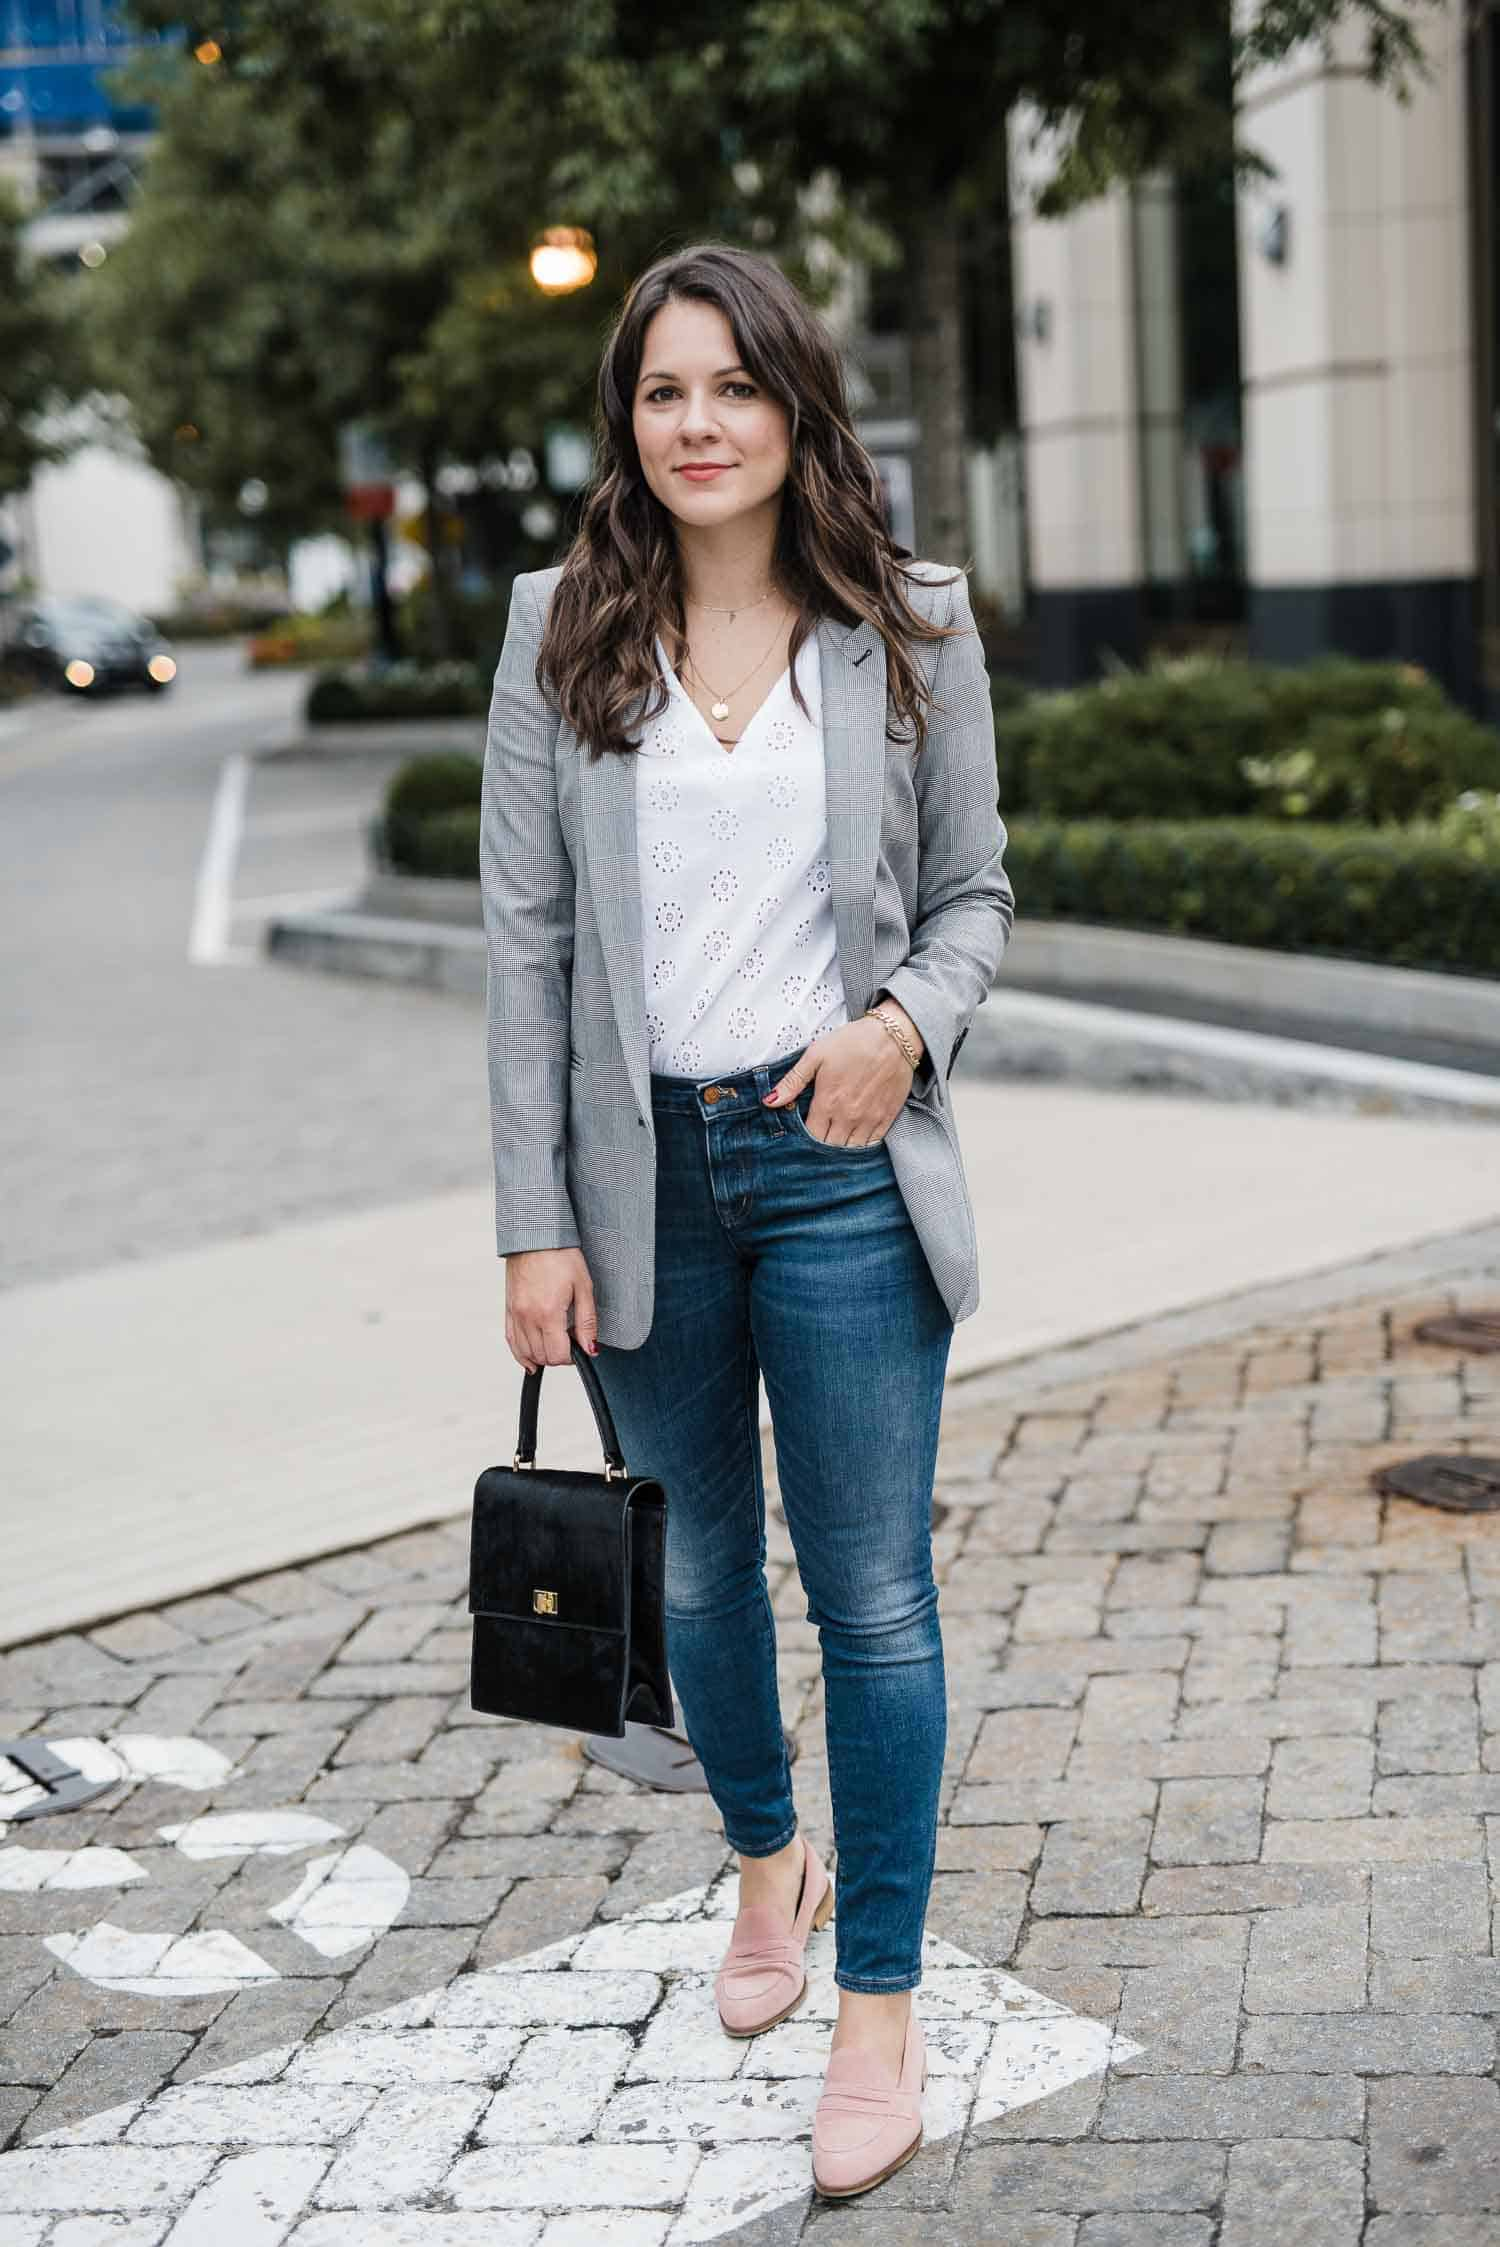 fall oversized blazer, fall outfit ideas, styling summer outfits into fall - My Style Vita